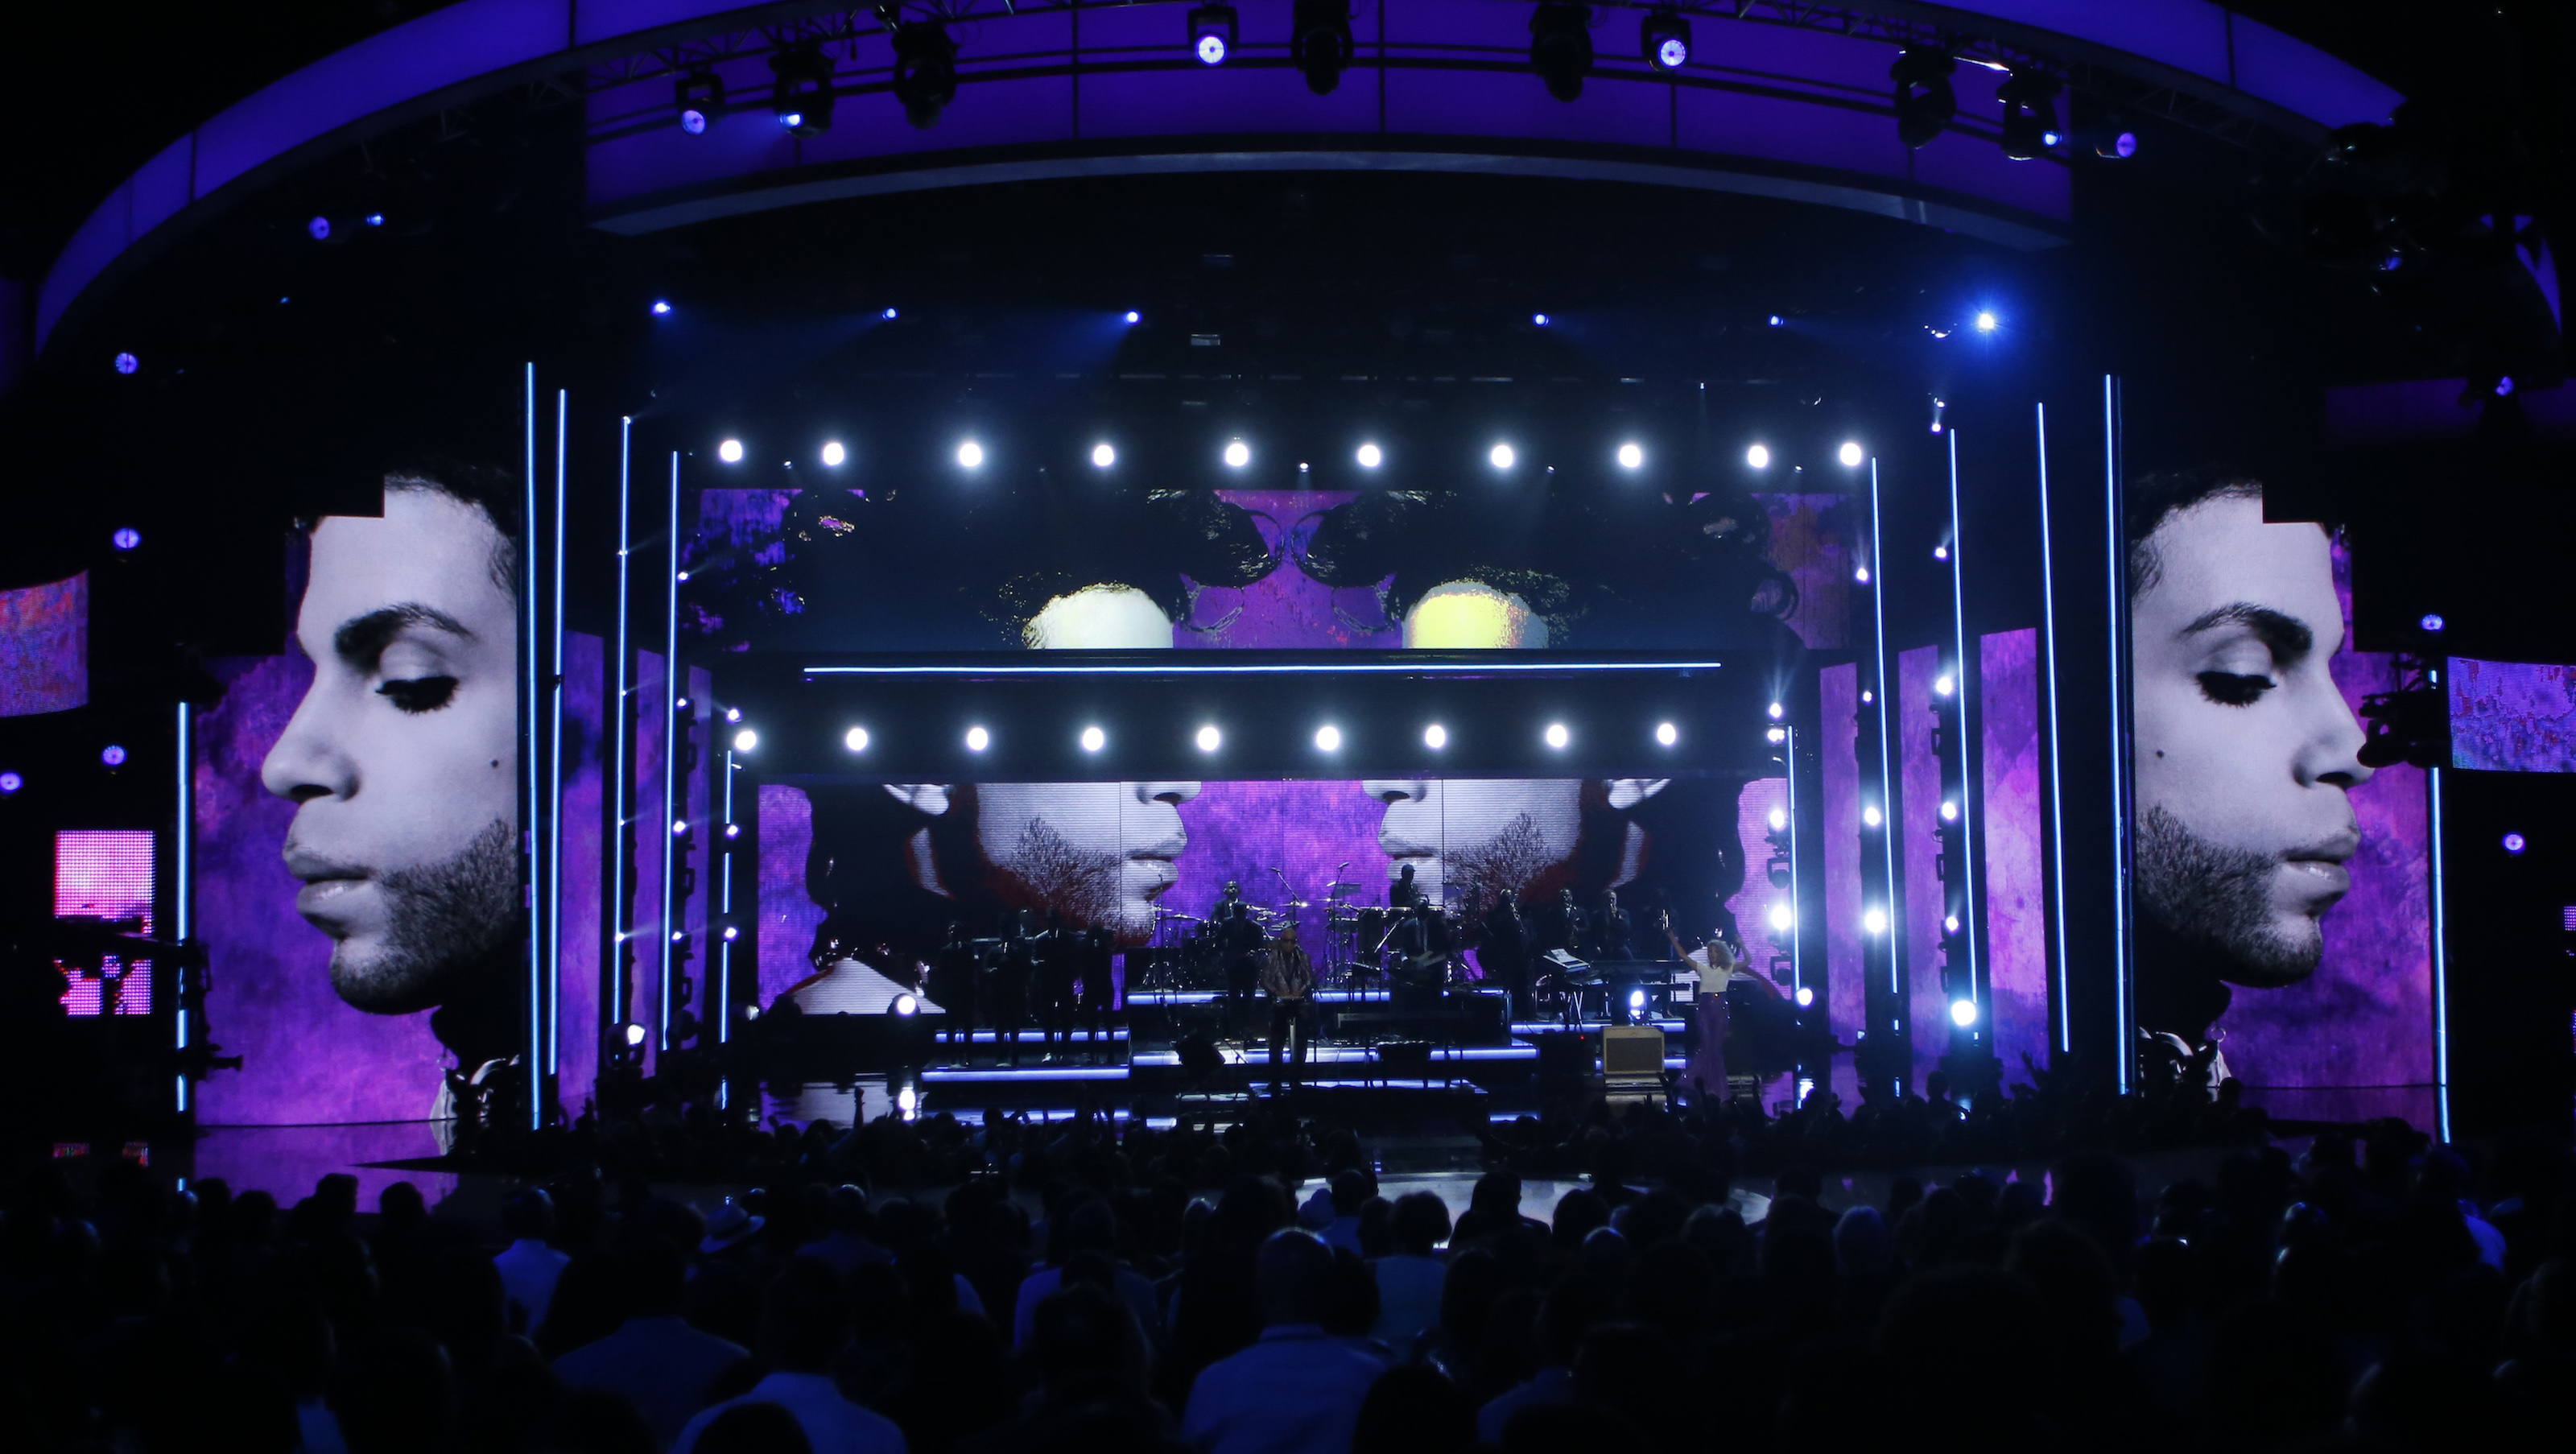 Stevie Wonder performs a medley during a tribute to the late singer Prince at the 2016 BET Awards in Los Angeles